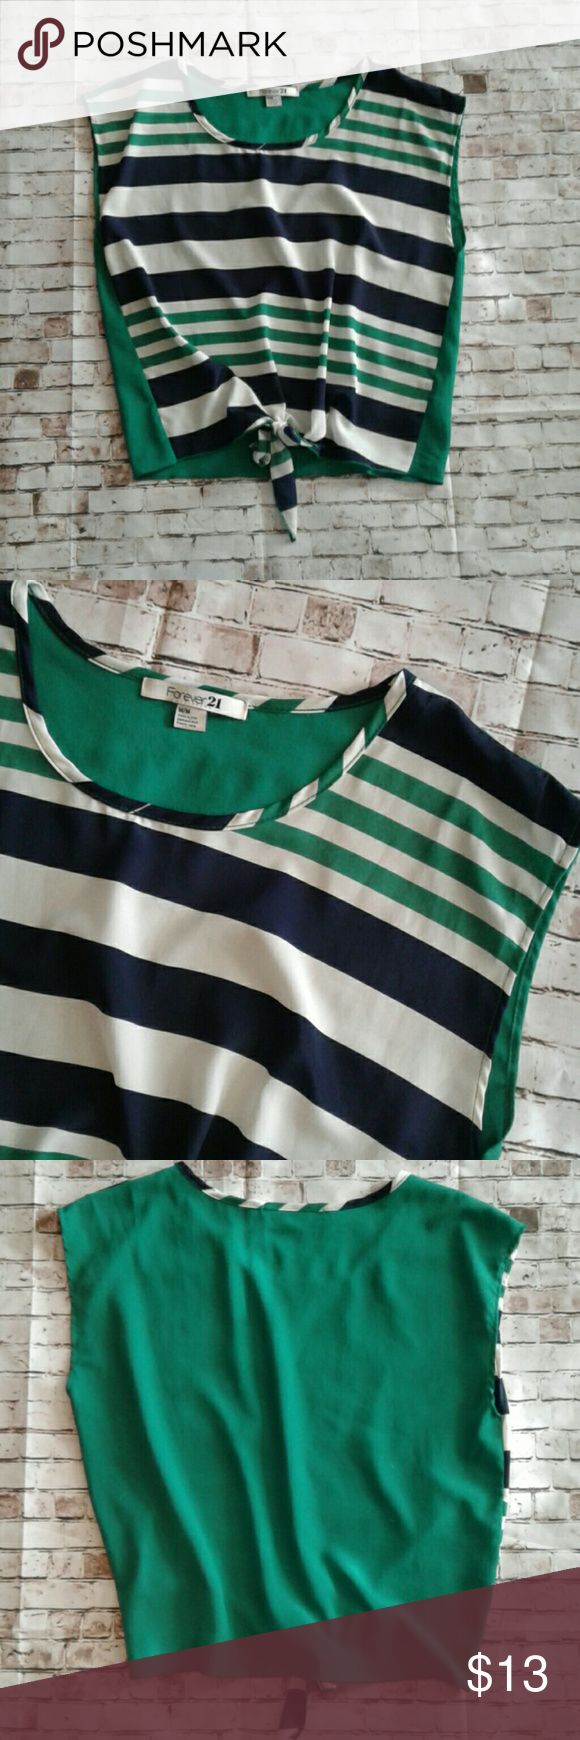 Striped tie hem Forever 21 top Navy, green, and cream colored stripes. tie hem. Perfect pre loved condition. Forever 21 Tops Blouses